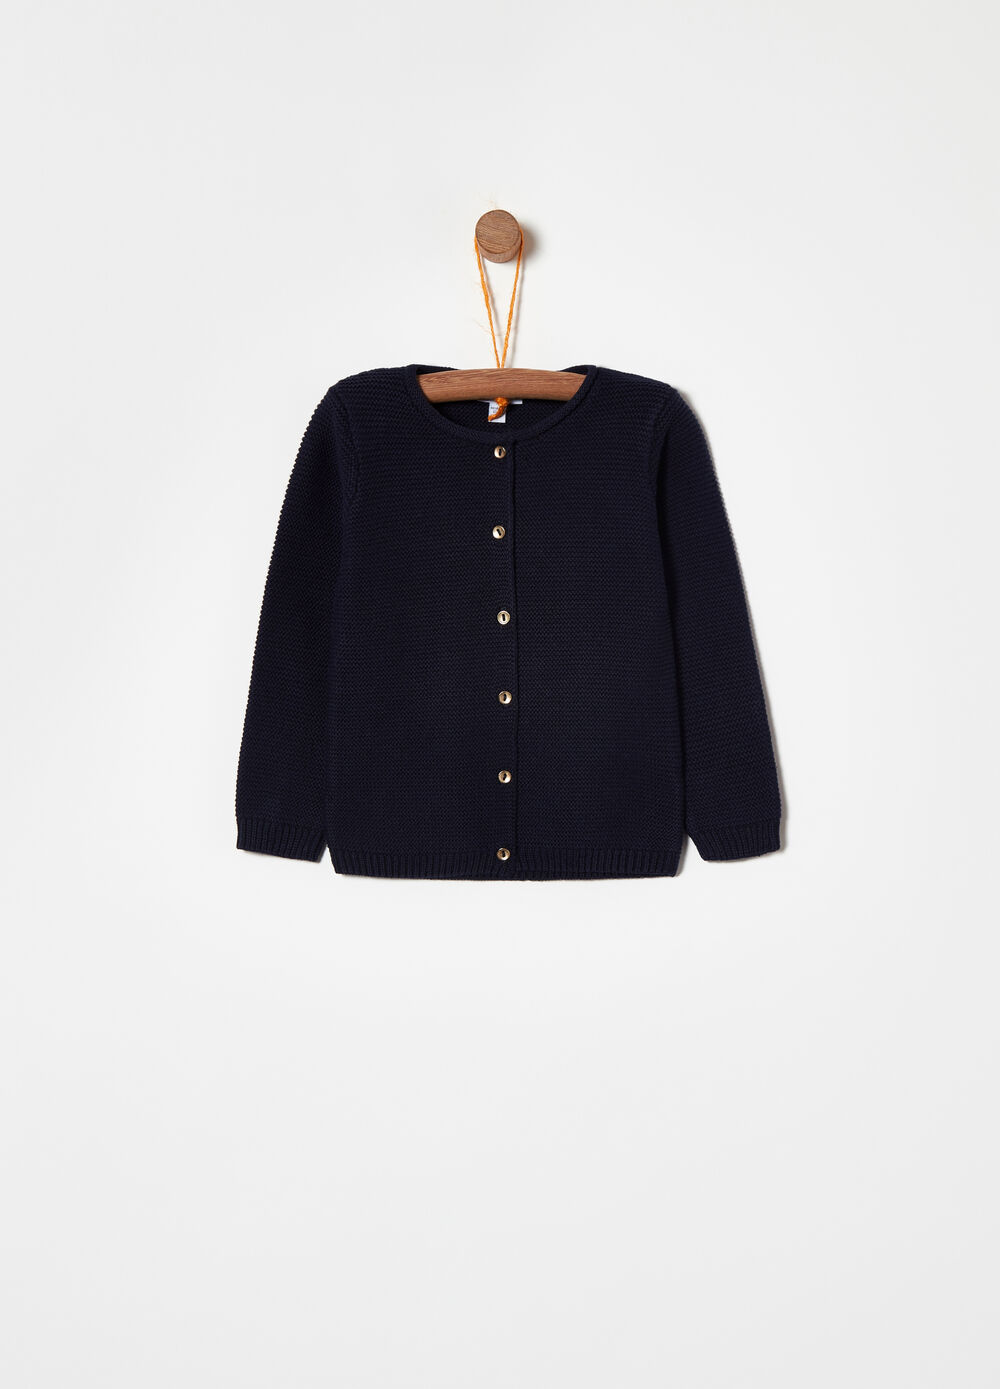 100% cotton cardigan with bronze buttons